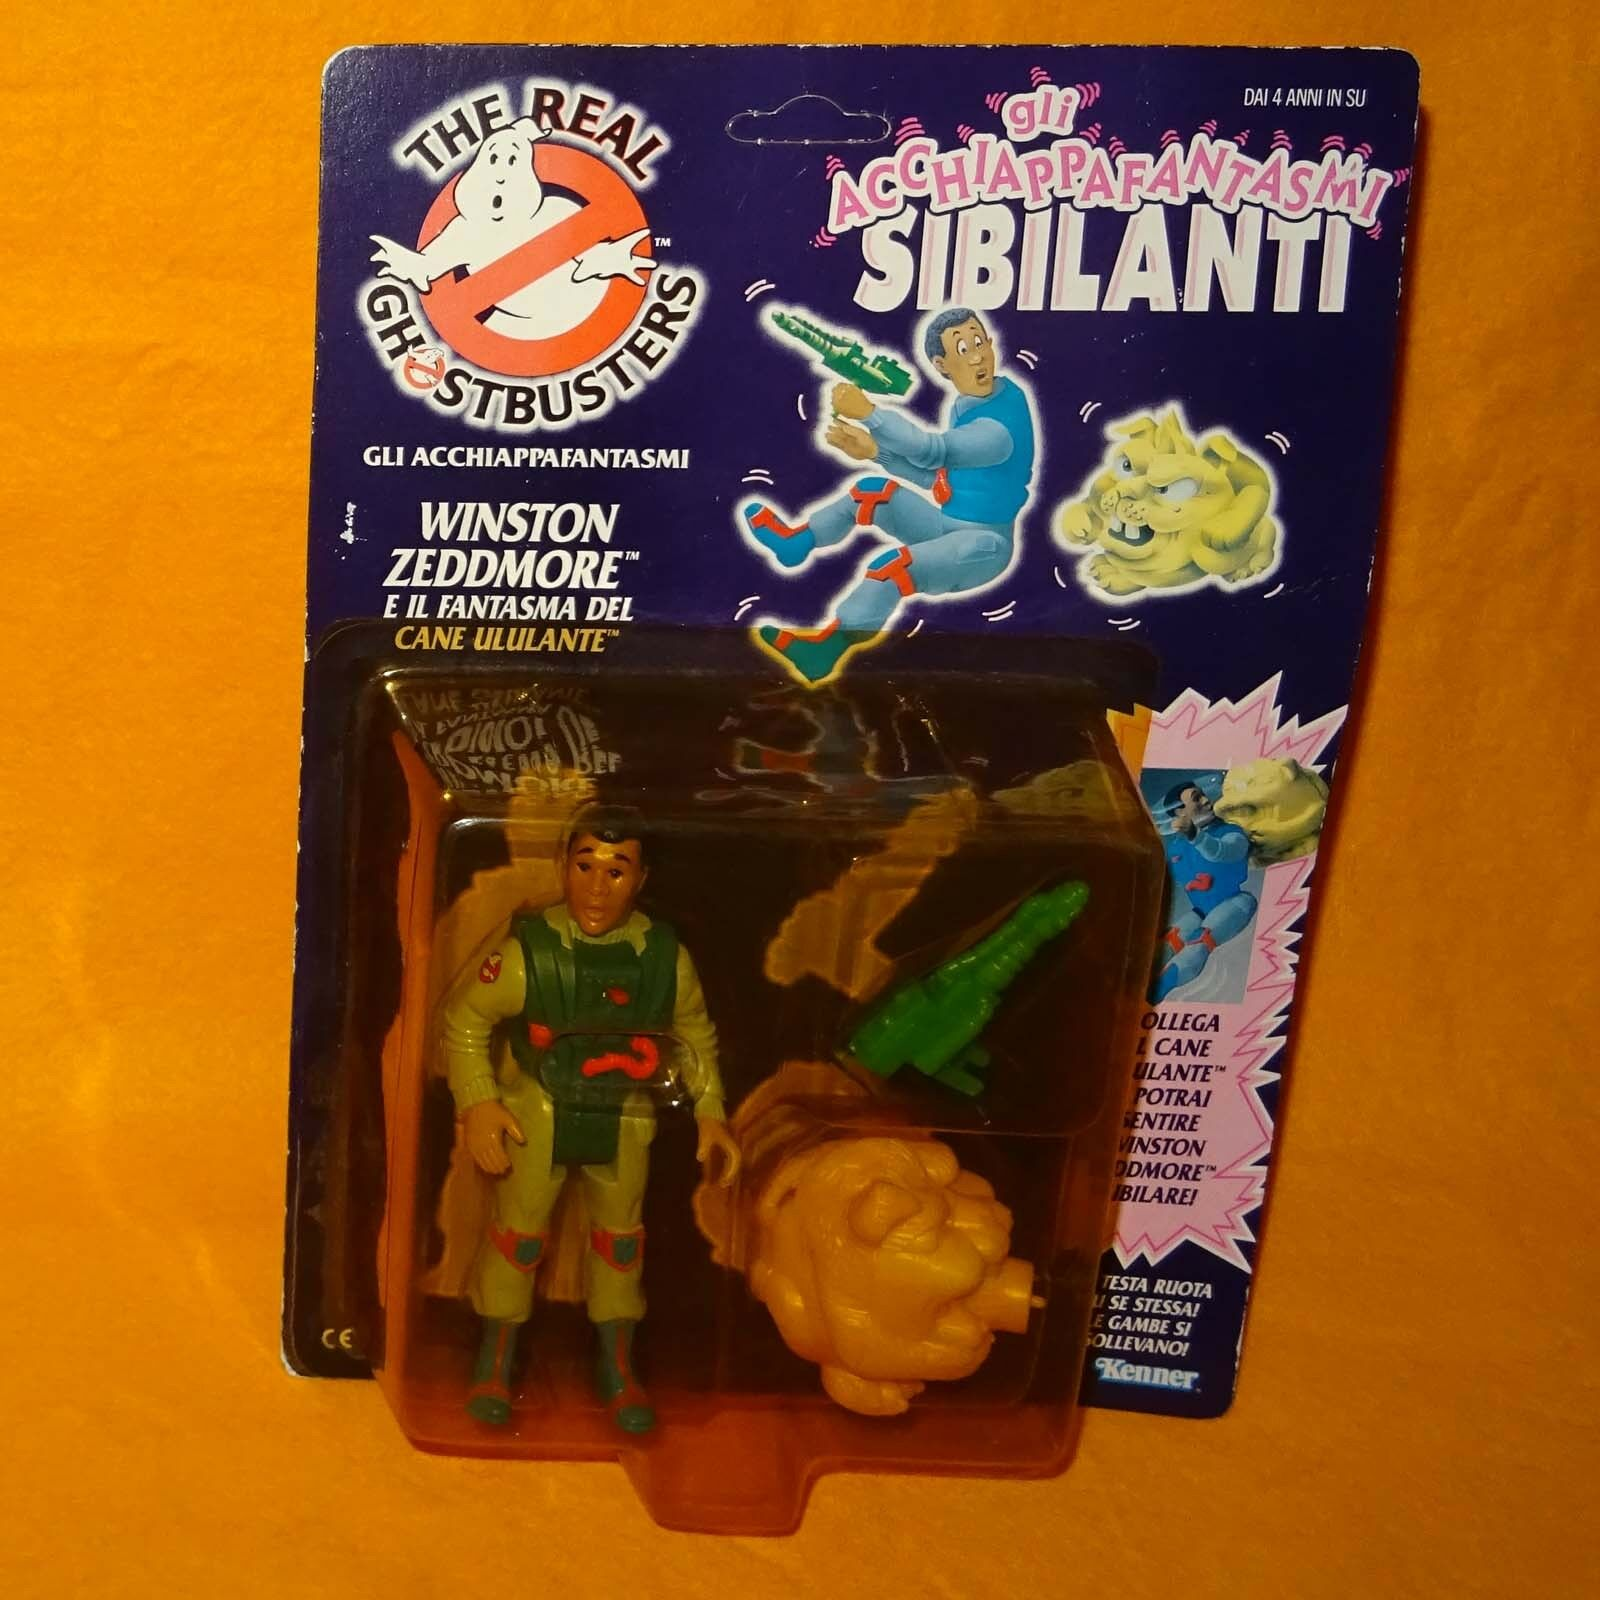 VINTAGE 80s THE REAL GHOSTBUSTERS SCREAMING HEROES WINSTON ZEDDMORE ZEDDMORE ZEDDMORE FIGURE MOC  | Stil